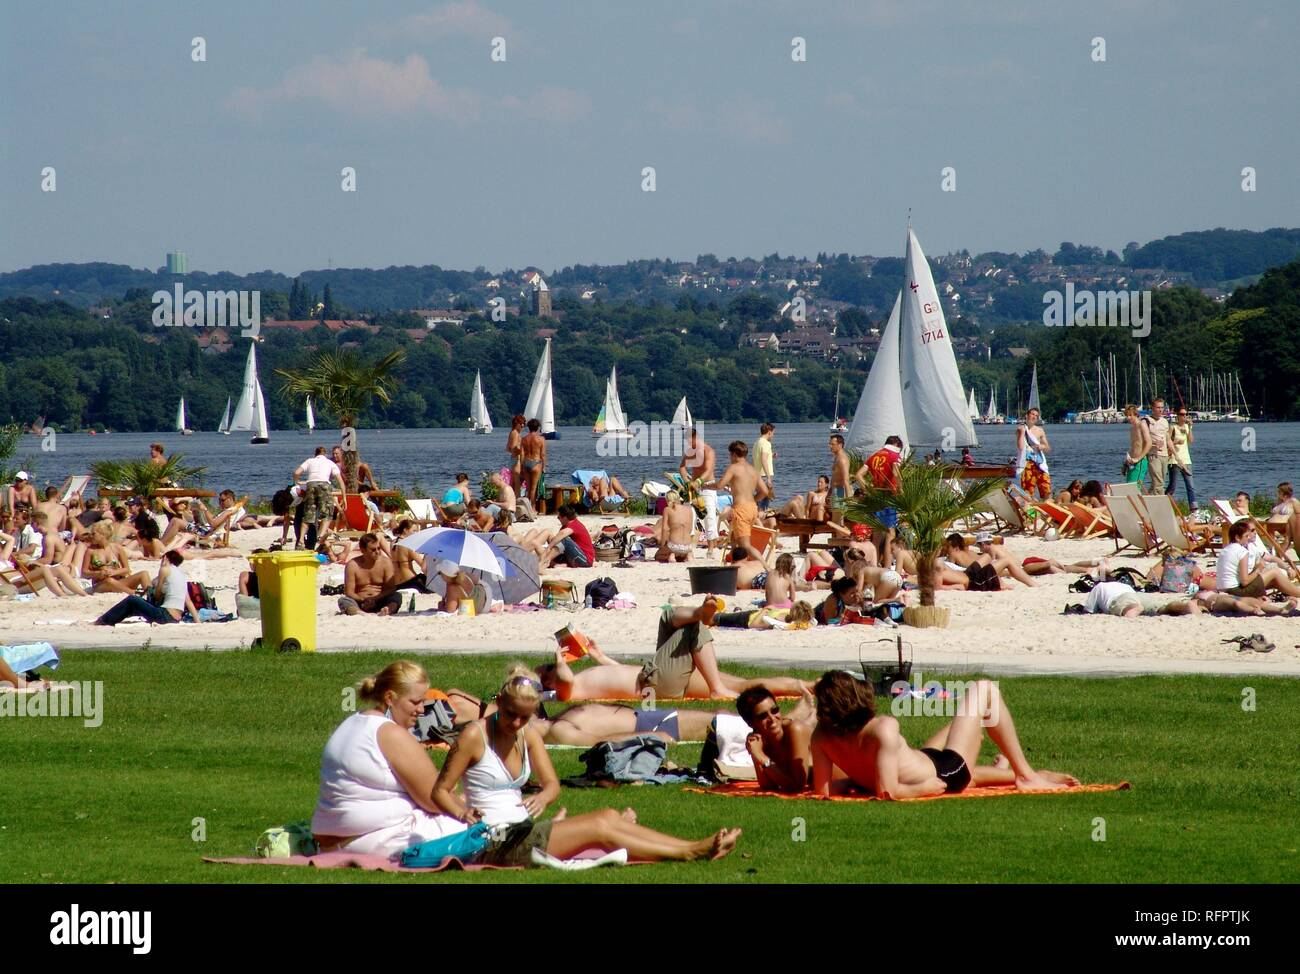 DEU, Germany, Essen : Baldeneysee lake, river Ruhr. Artificial sand beach for chilling and fun at the Ruhr shore. Seaside Beach - Stock Image